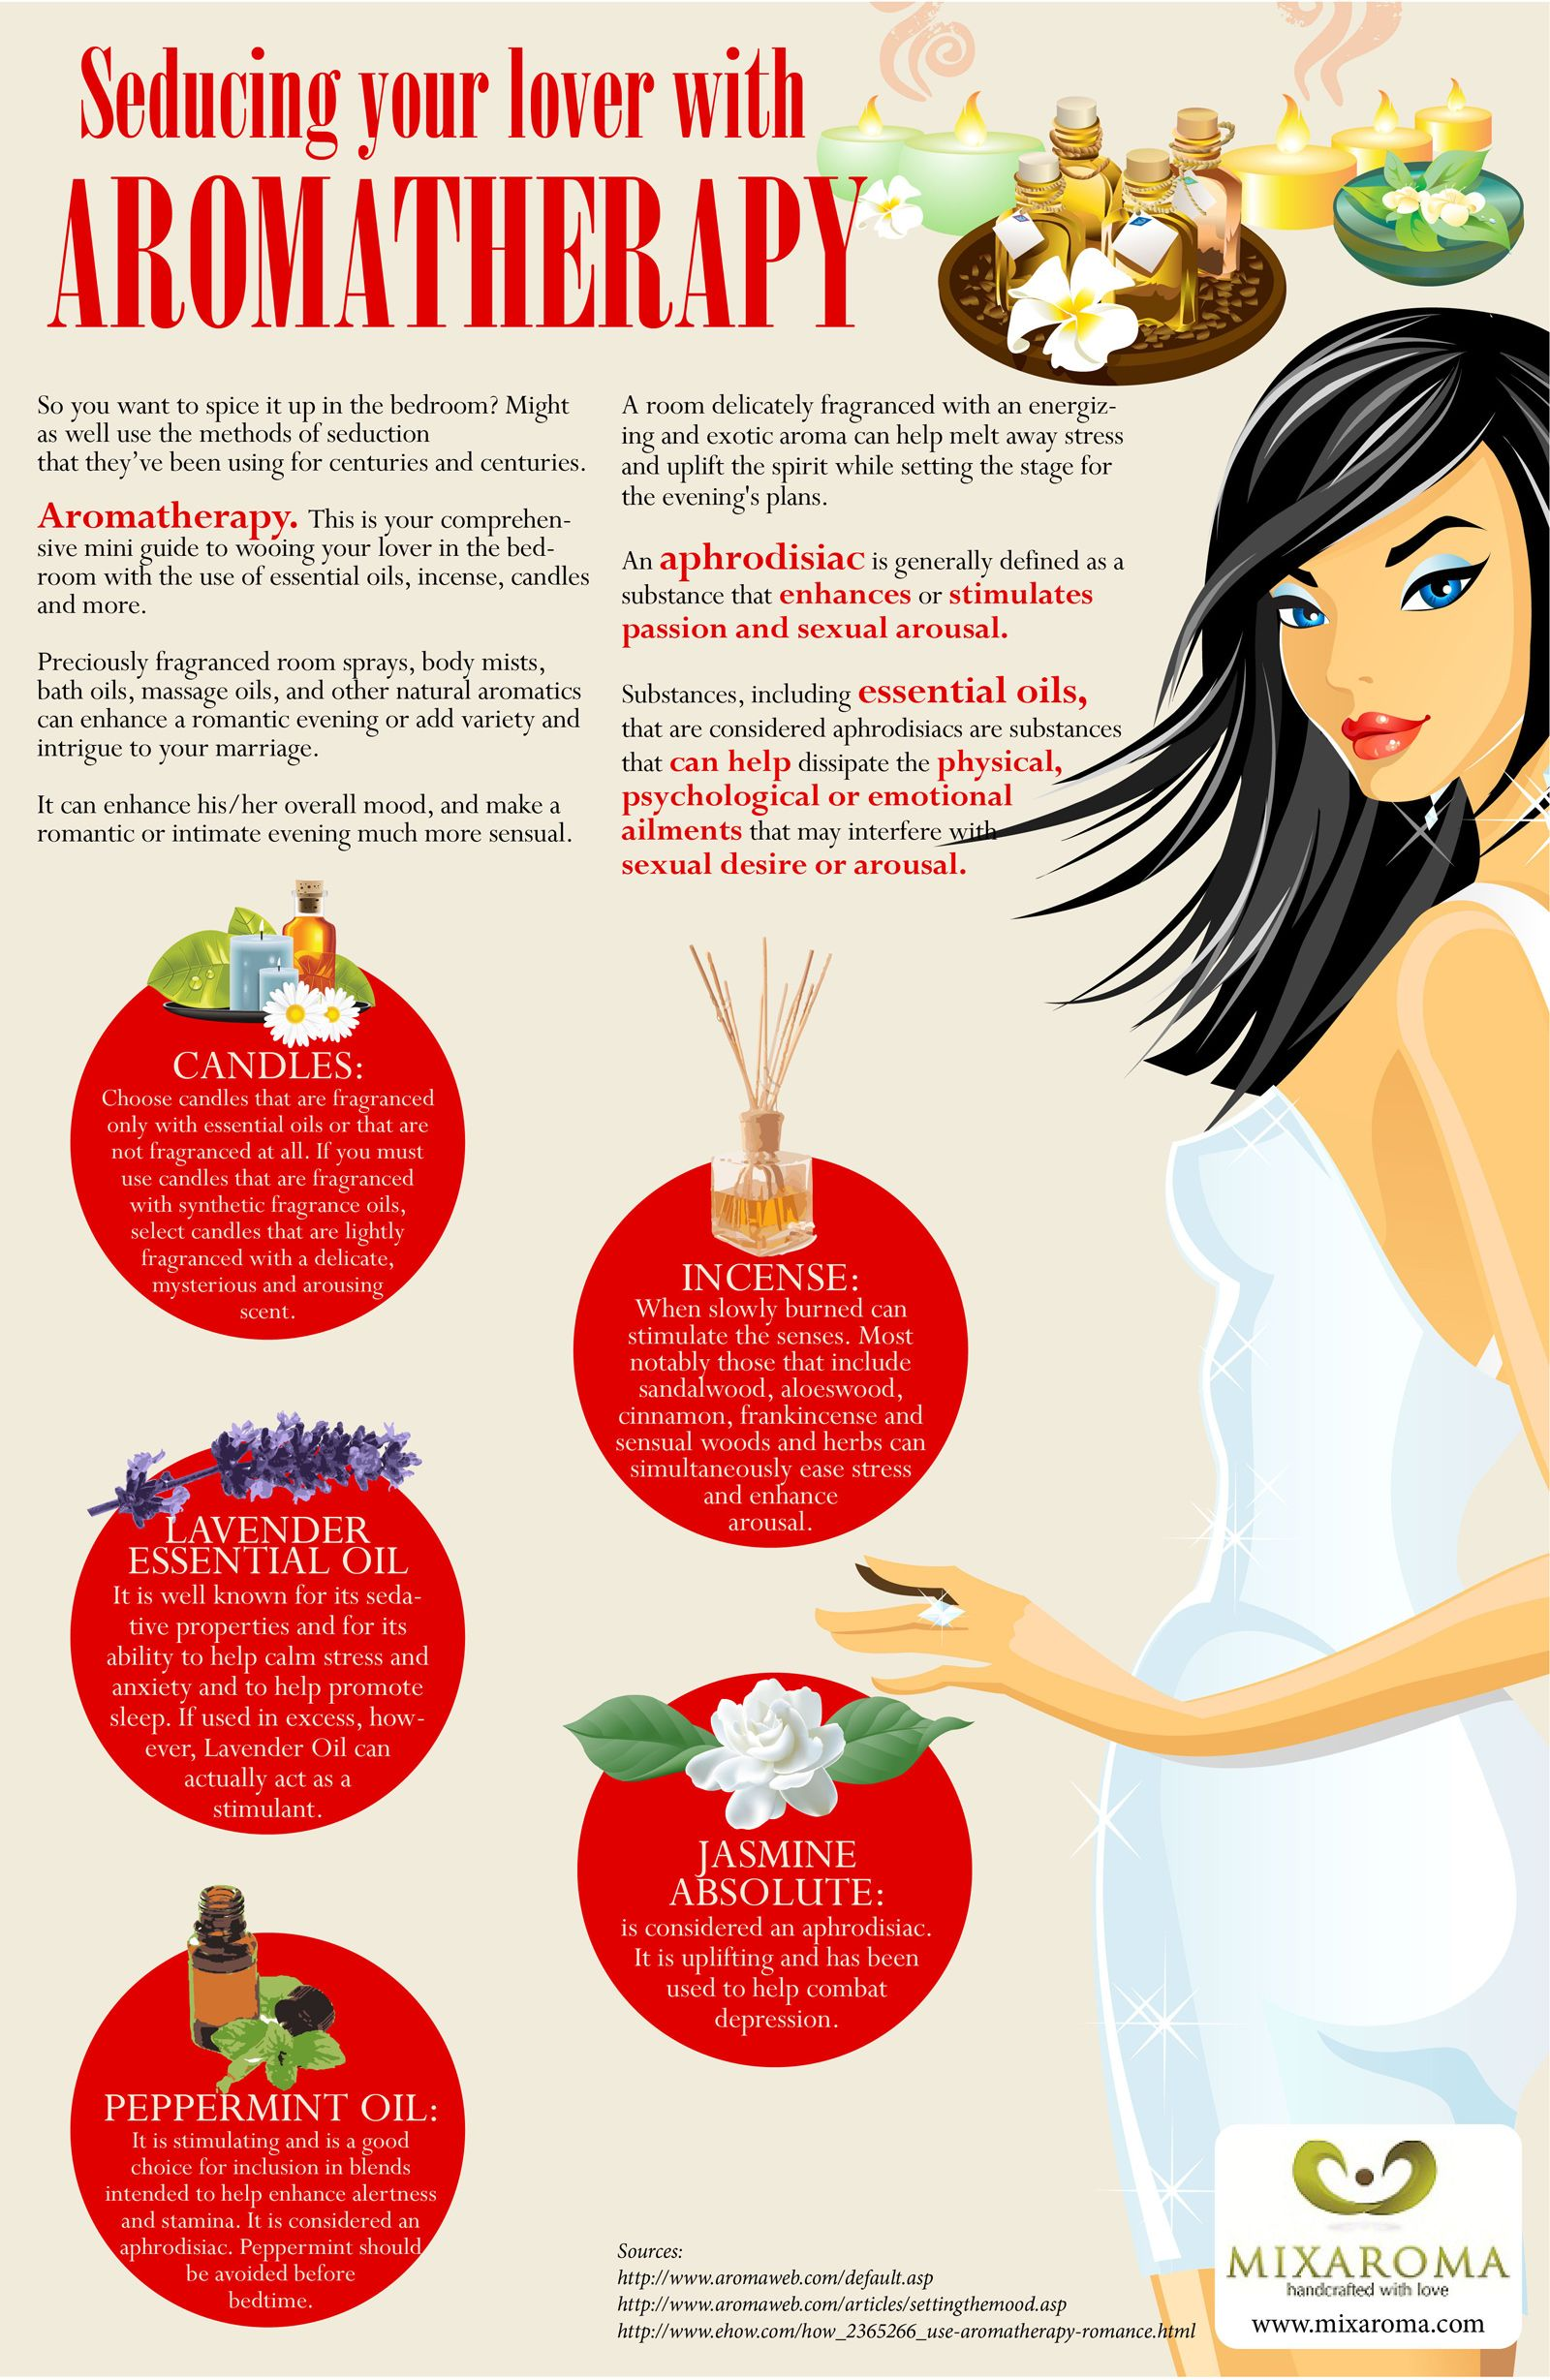 How To Seduce Your Lover With Aromatherapy Aromatherapy Essential Oils Aromatherapy Essential Oil Aphrodisiac